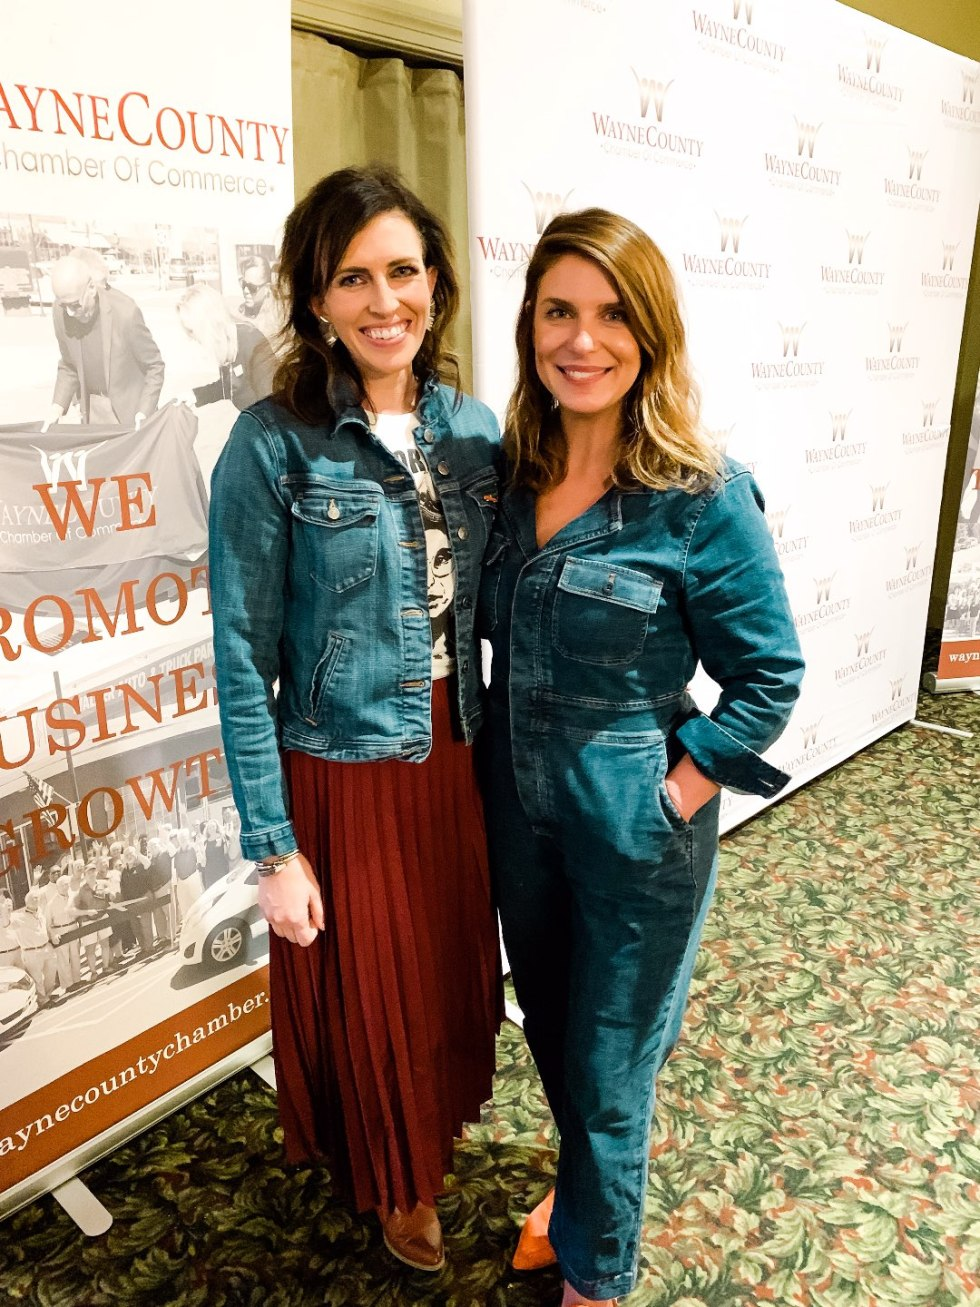 Eastern North Carolina Travel Guide: Top 10 Things to Do in Goldsboro NC by popular North Carolina blog, I'm Fixin' To: image of two women standing together and posing for a picture.